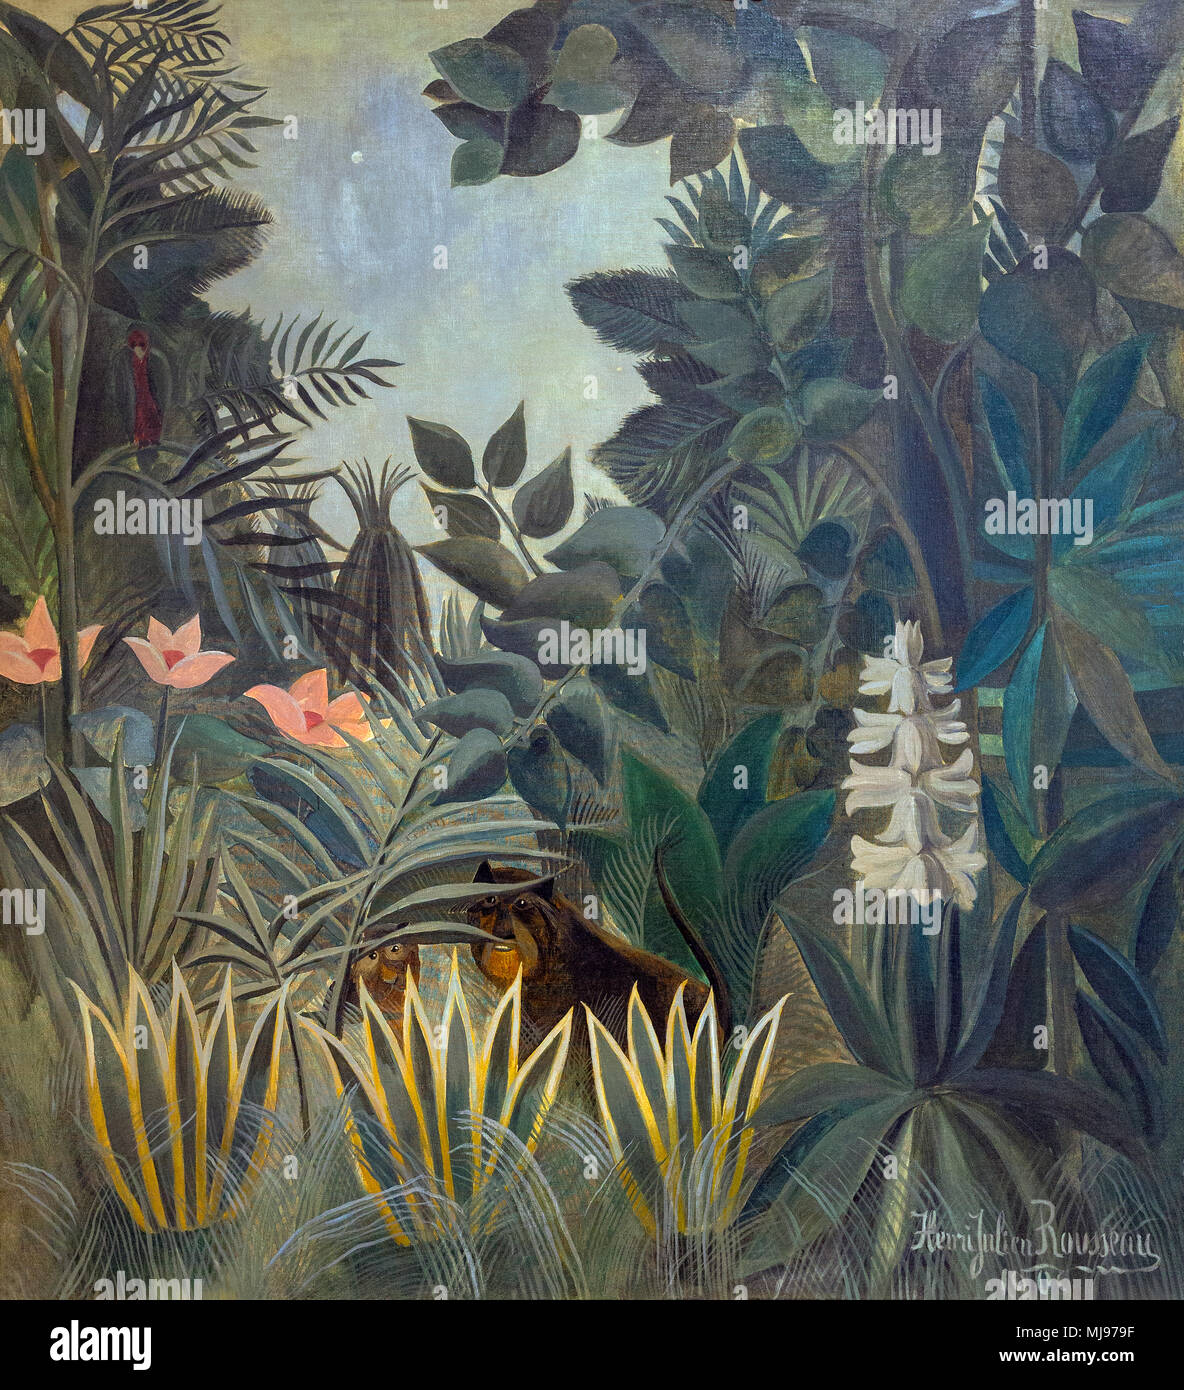 The Equatorial Jungle, Henri Rousseau, 1909, National Gallery of Art, Washington DC, USA, North America - Stock Image